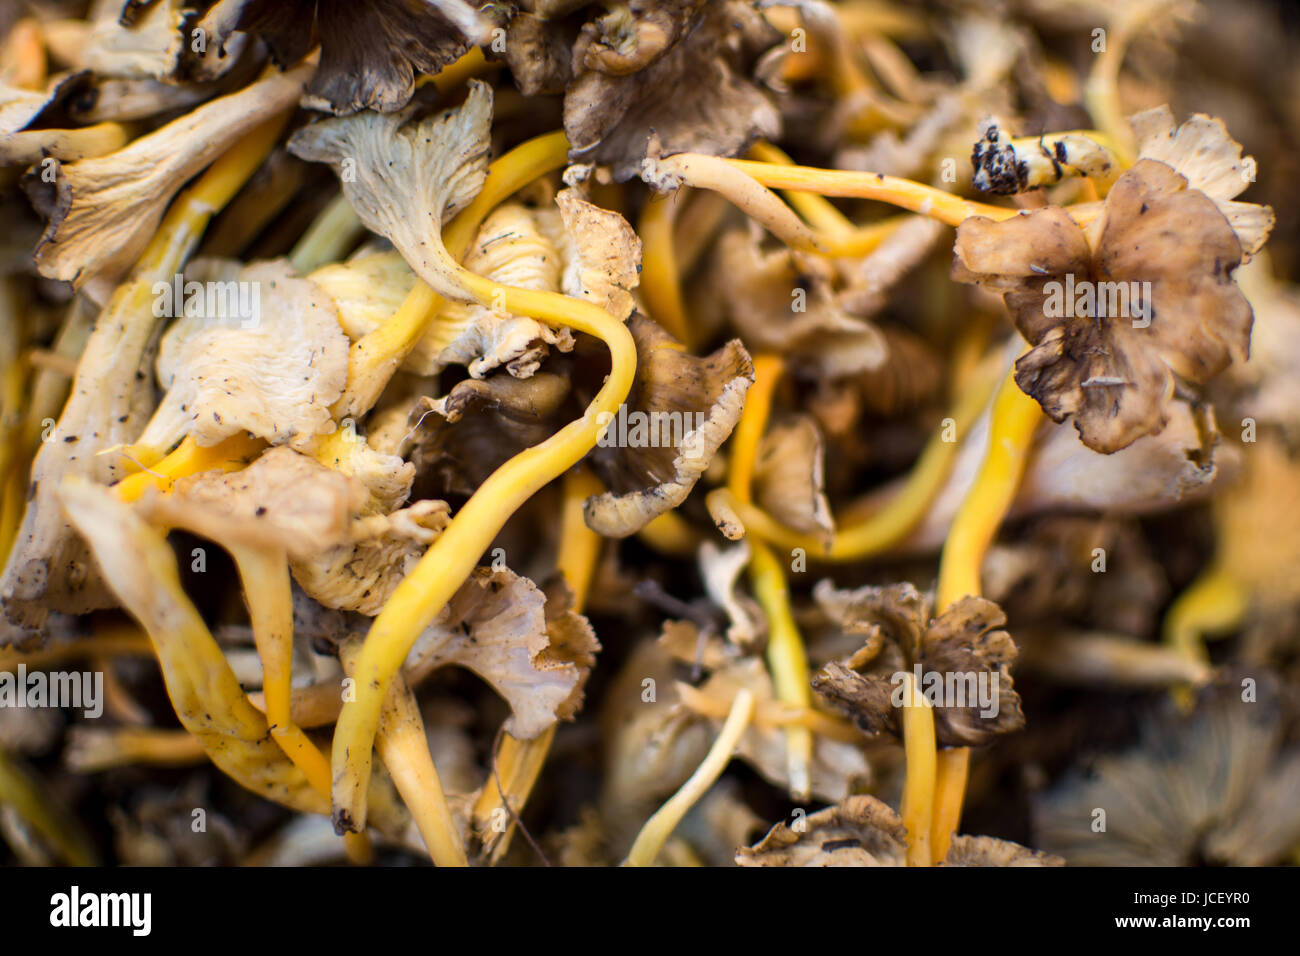 Pile of Dried Shiitake Mushrooms Close Up Background. Healthy Eating. Stock Photo